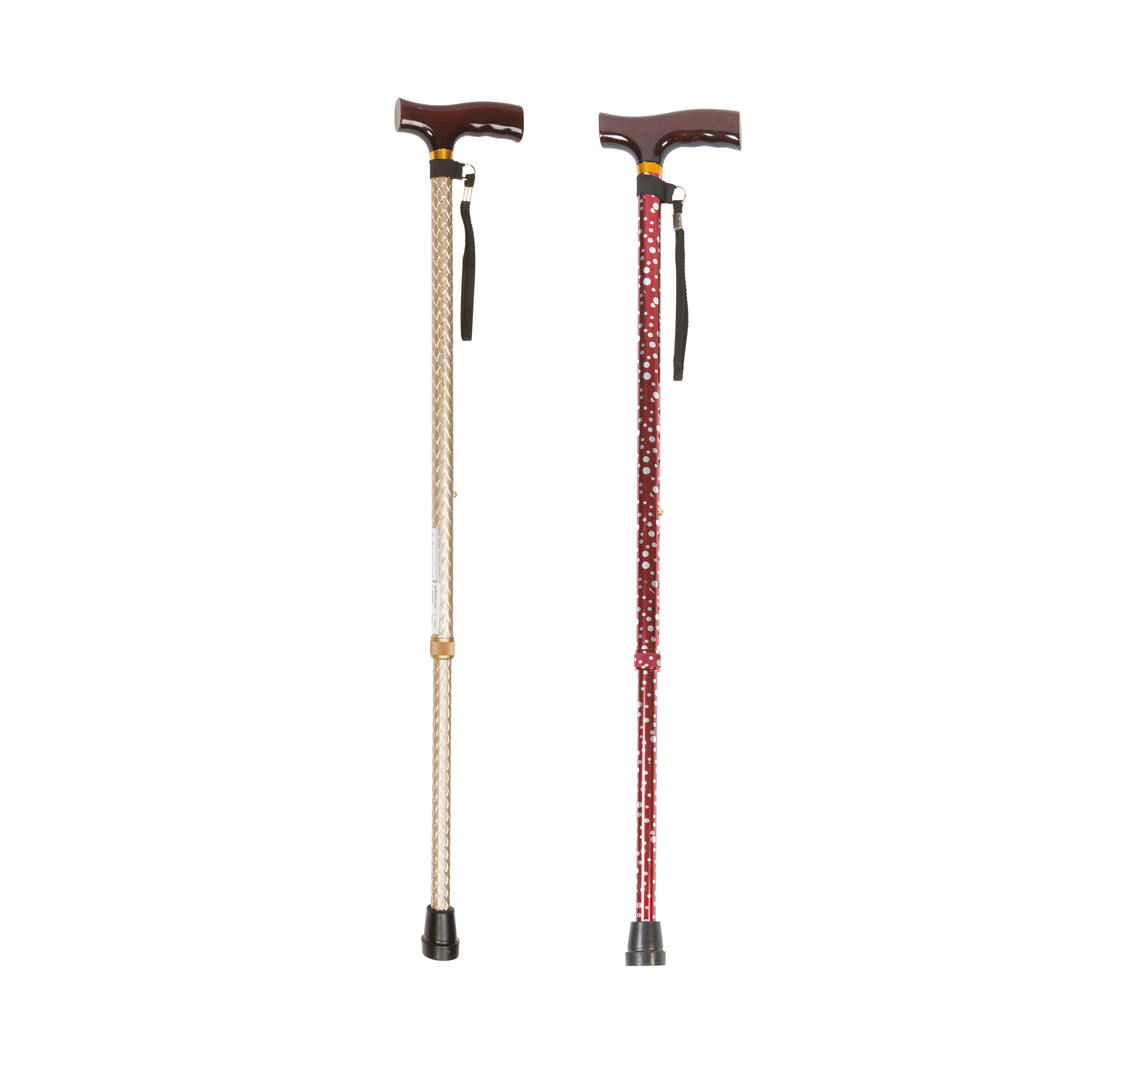 Walking Aids | Walking Sticks & Crutches | uk-cane-pack-2-t-handle-walking-sticks